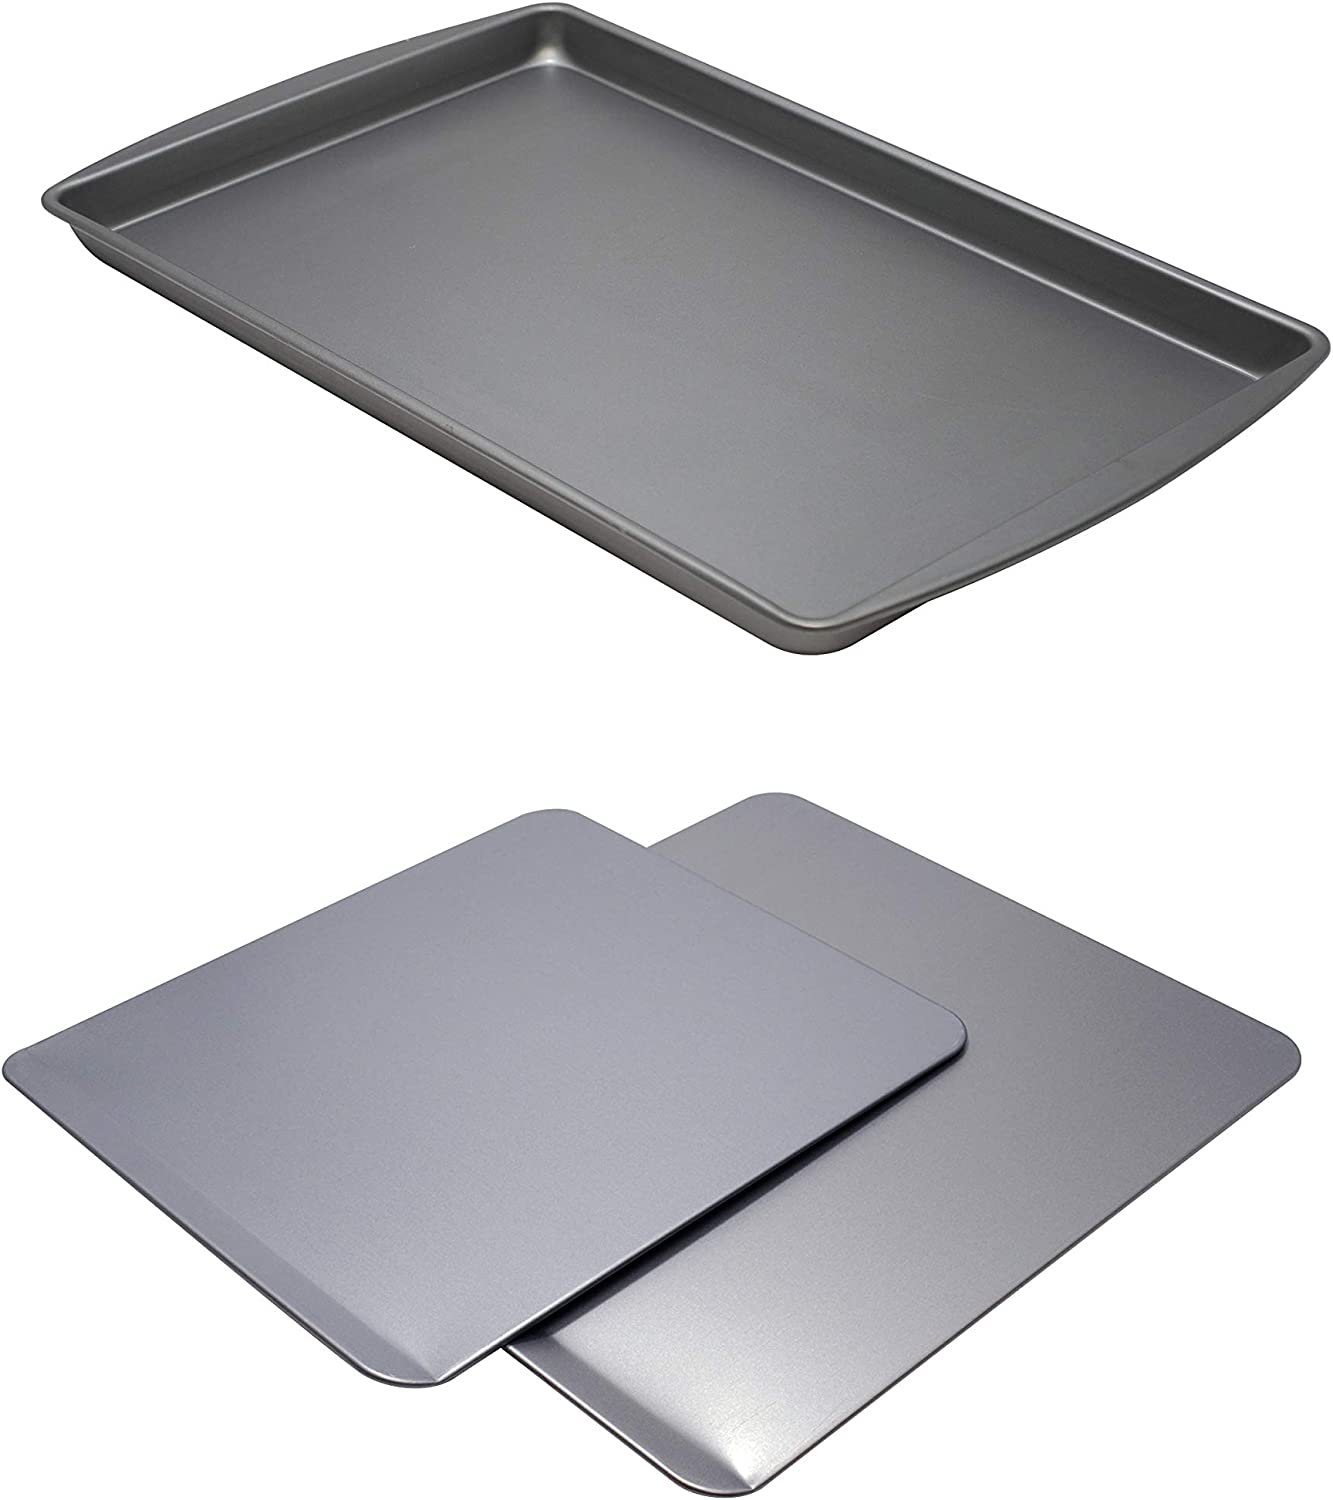 Mainstays Cookie Slider,| 2-Piece| bundle with Mainstays|Large| Non-stick Cookie Sheet Pan|